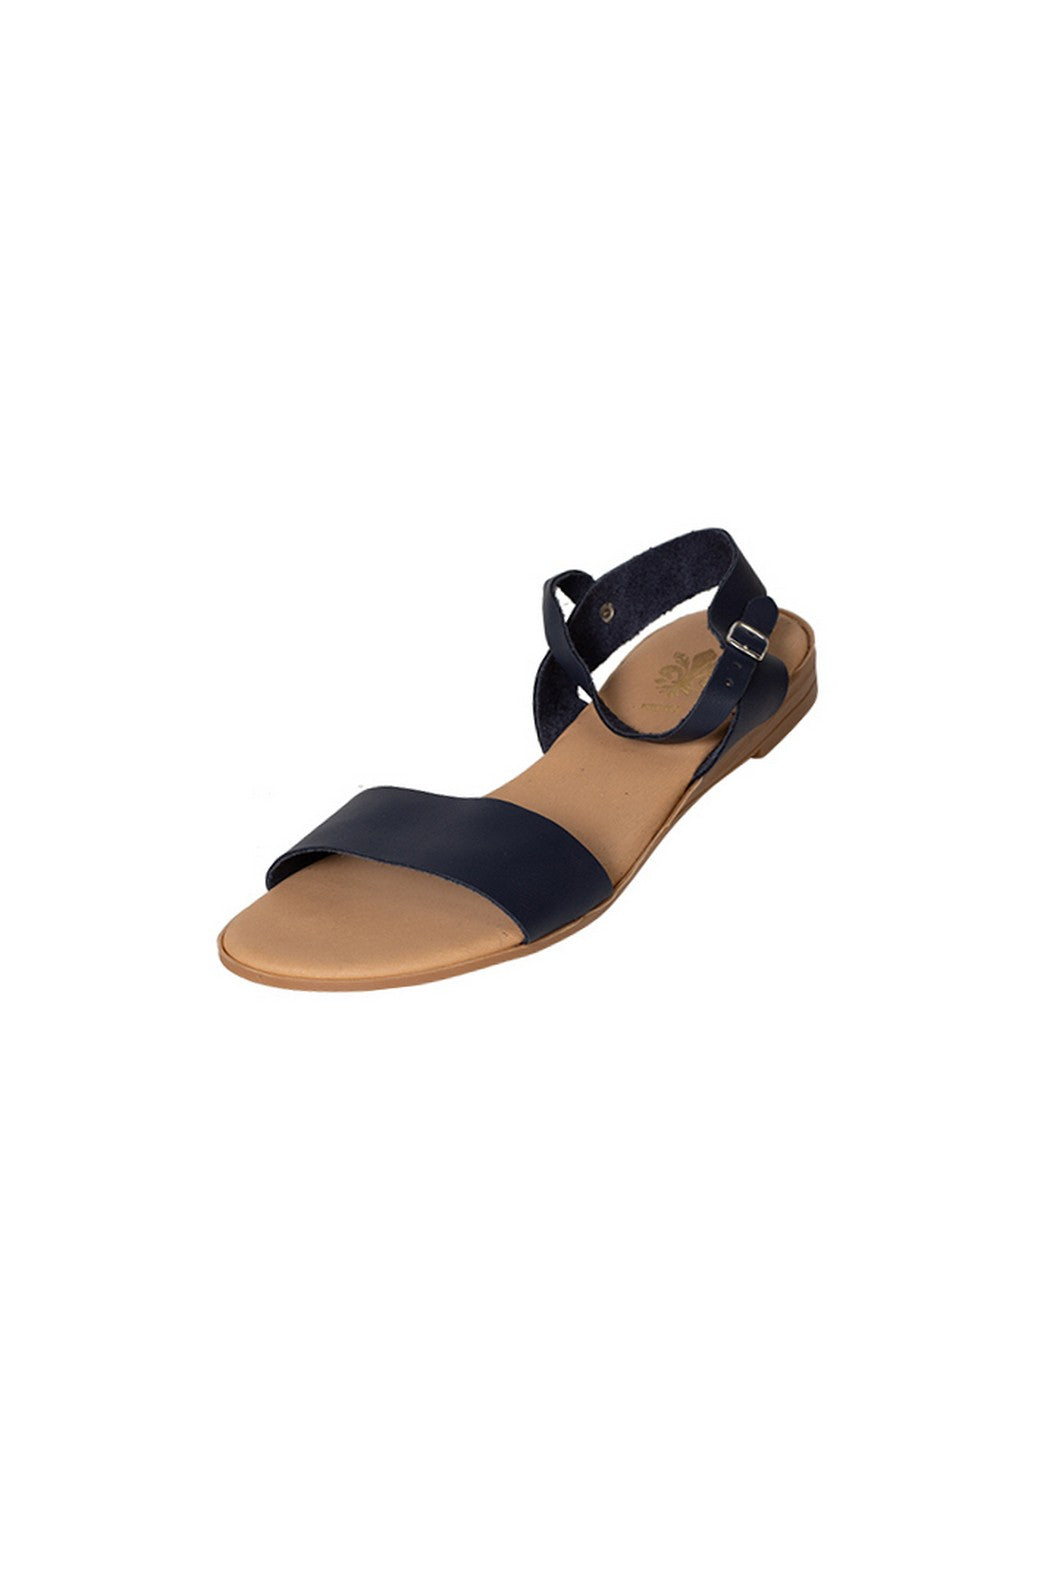 Lucia casual navy sandal two strap less than 100